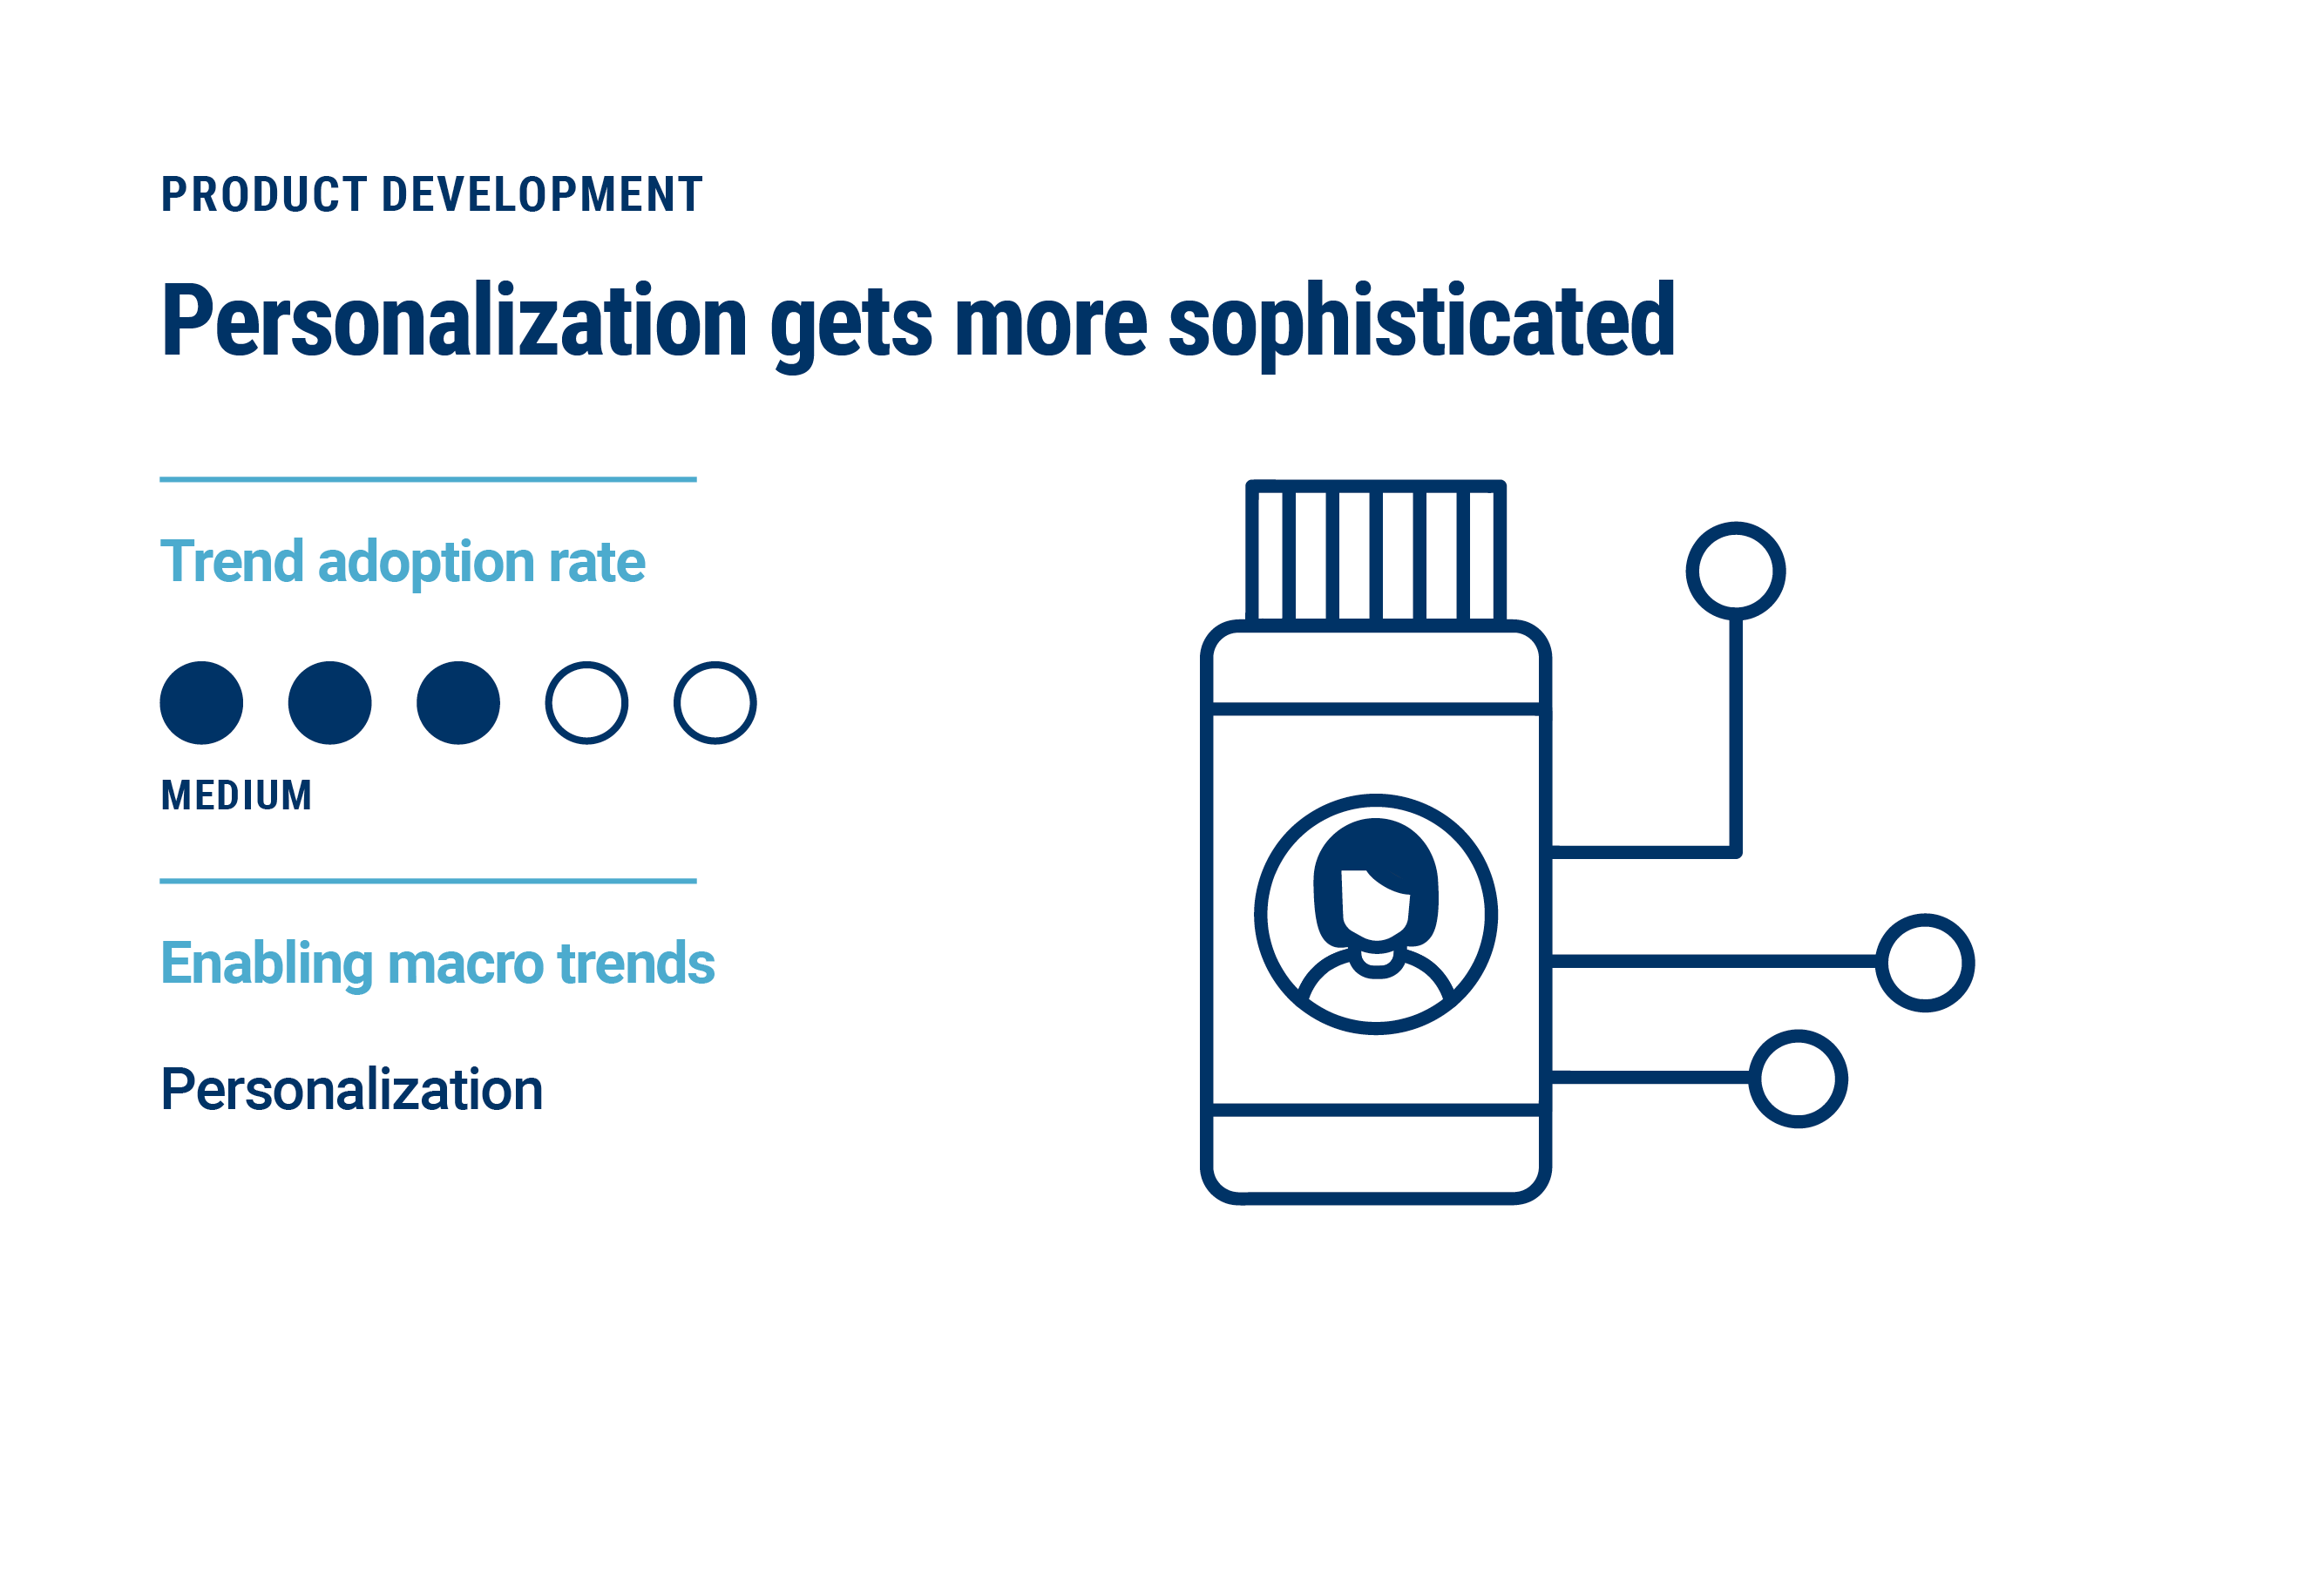 Graphic showing the trend personalization gets more sophisticated, with an expected medium adoption rate.